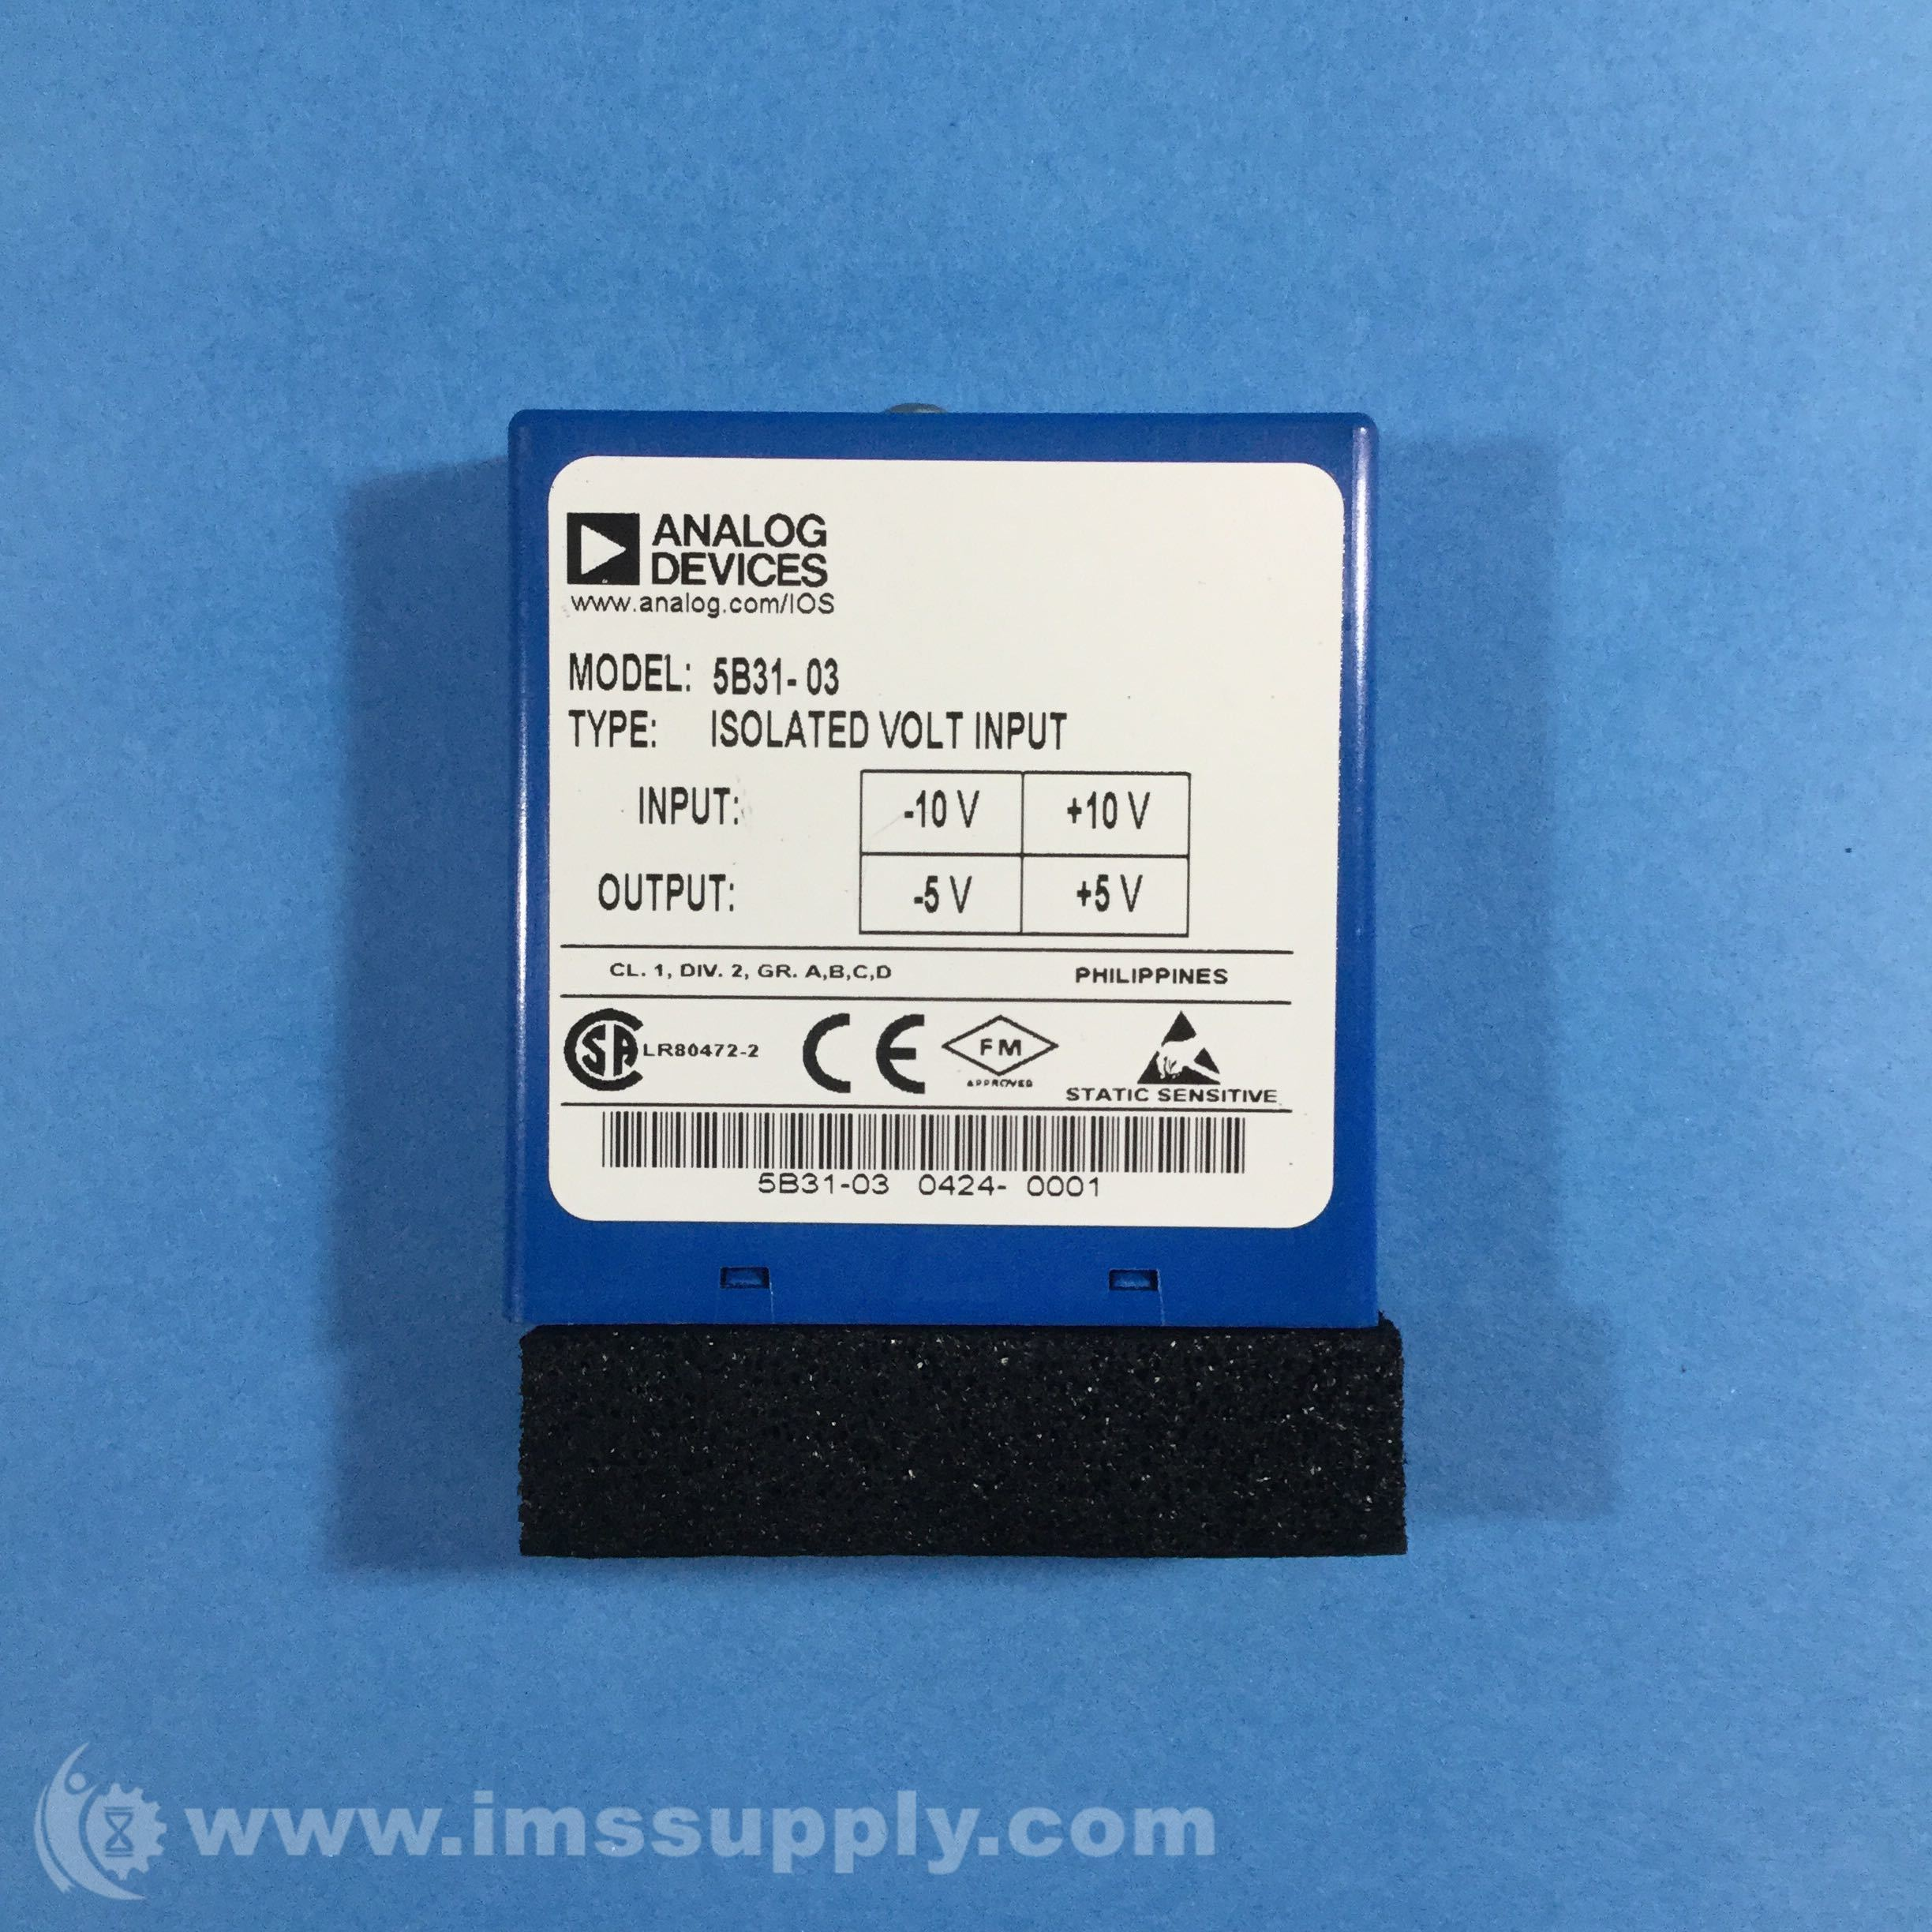 +//-5V IN and OUT 5B31-02 ISOLATED INPUT MODULE ANALOG DEVICES